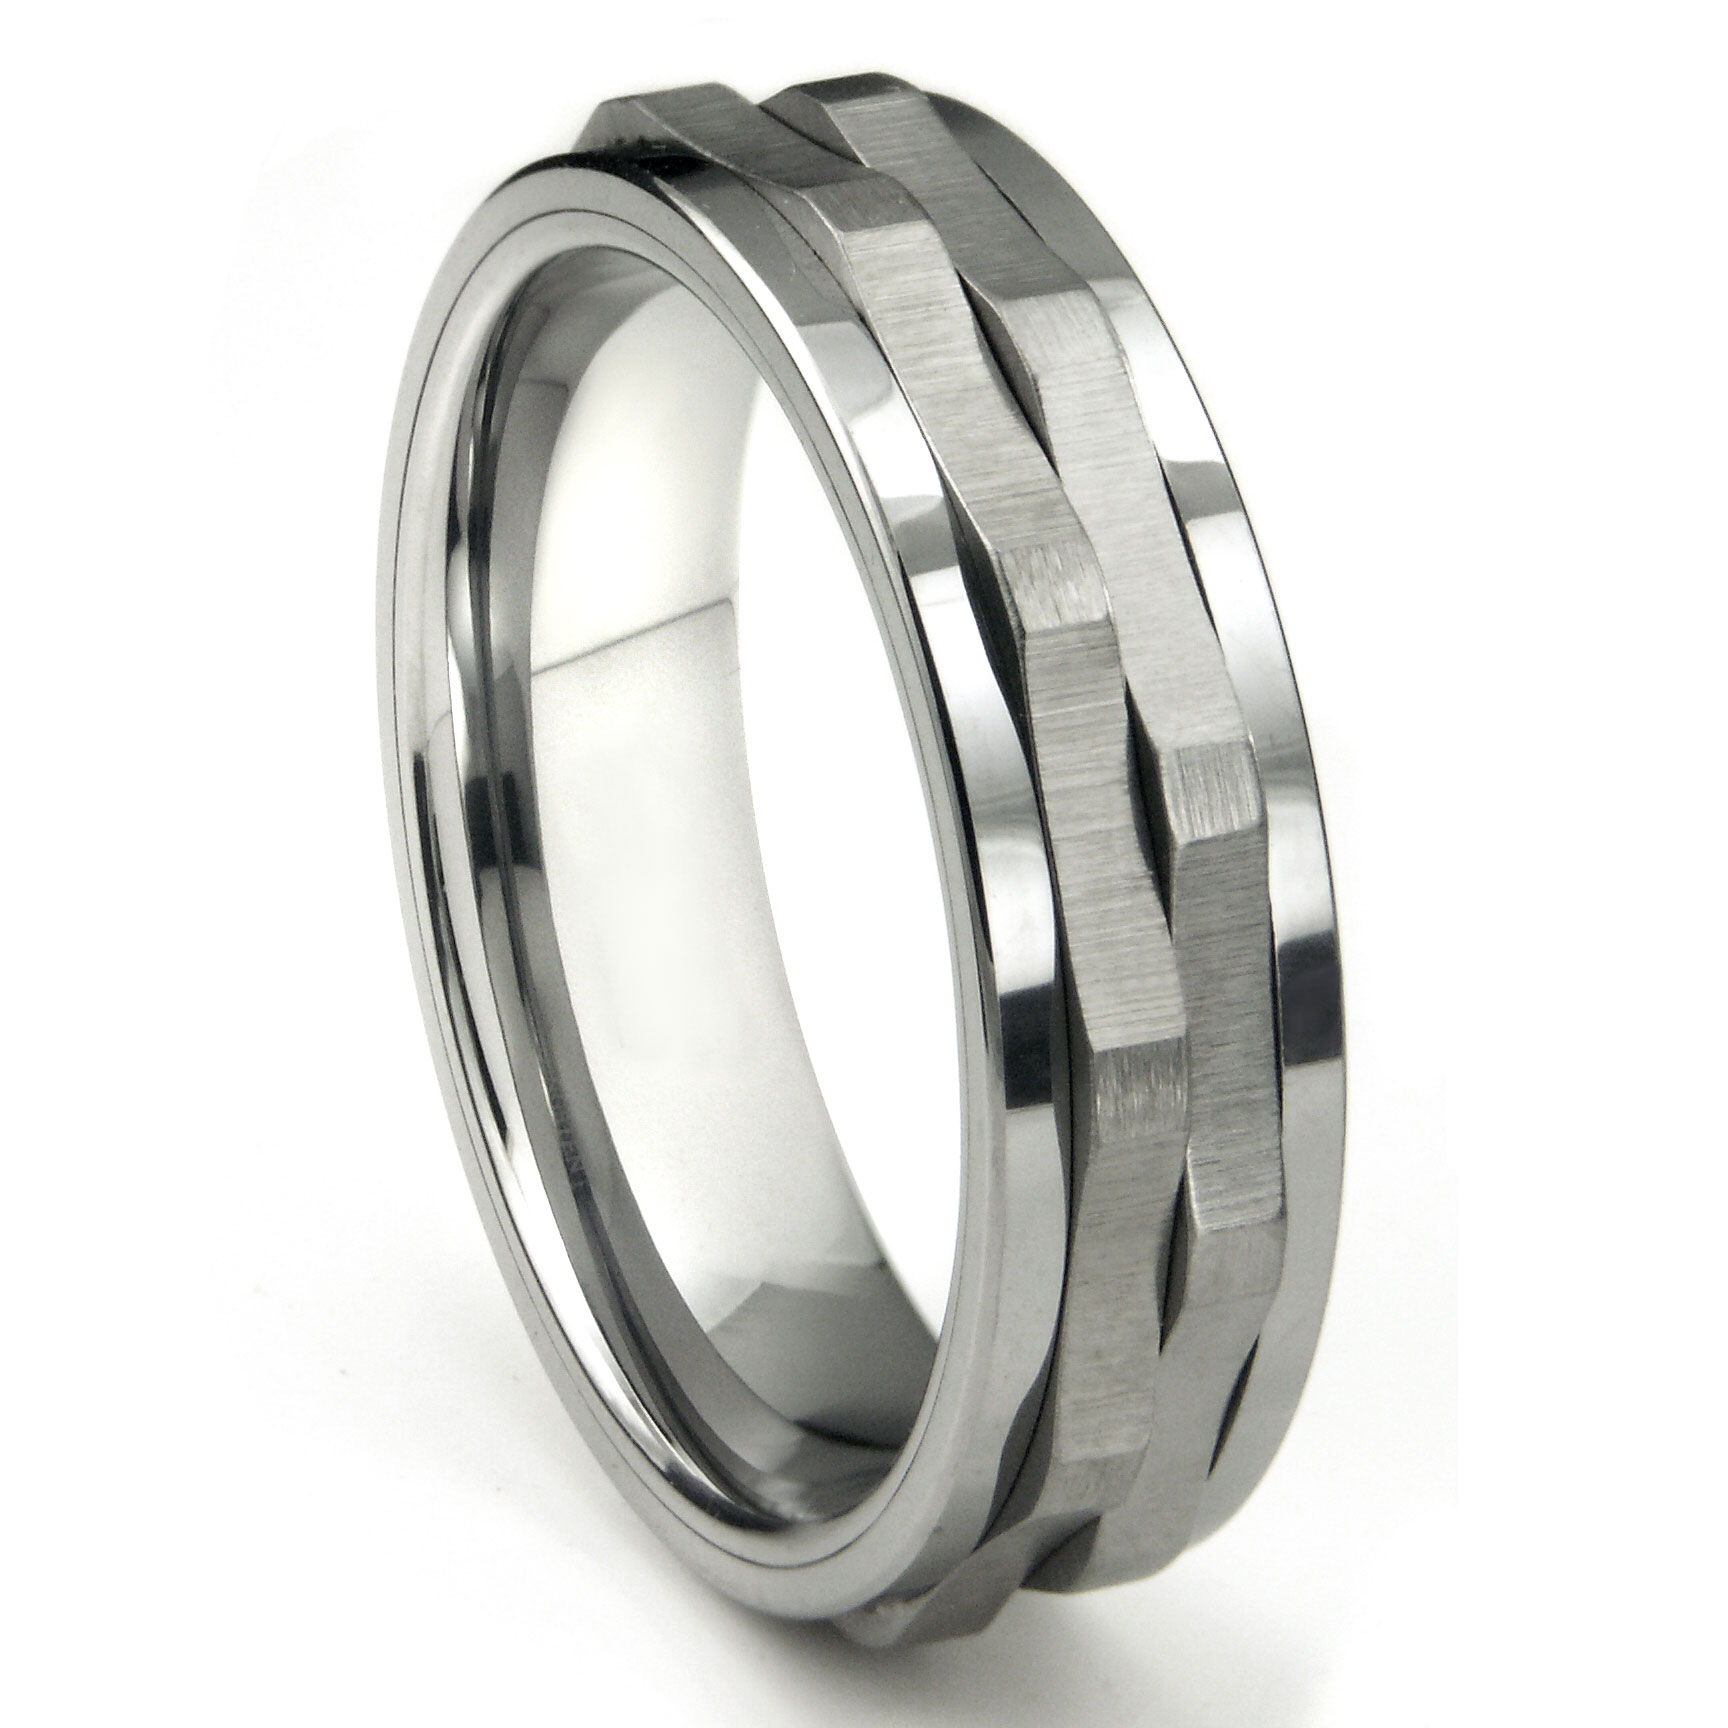 wedding full gunmetal greending men for green unique ring photos best of bands blue black lantern women ideas band size tungsten